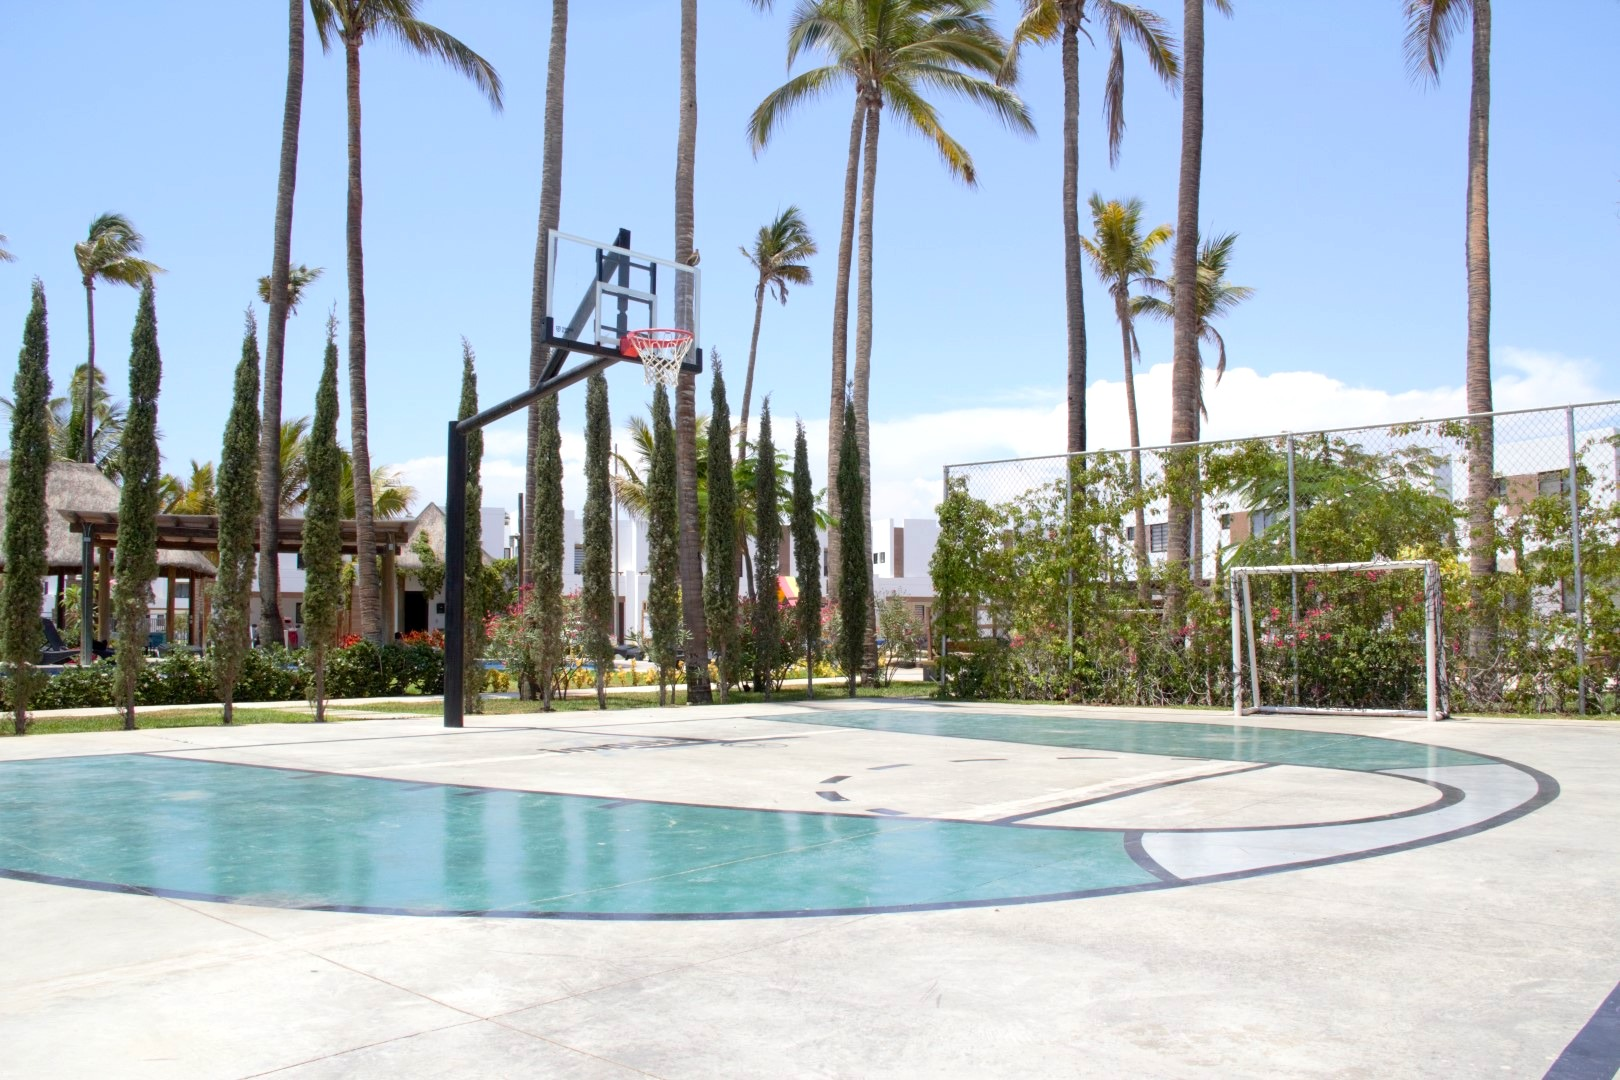 Basketball and soccer court.